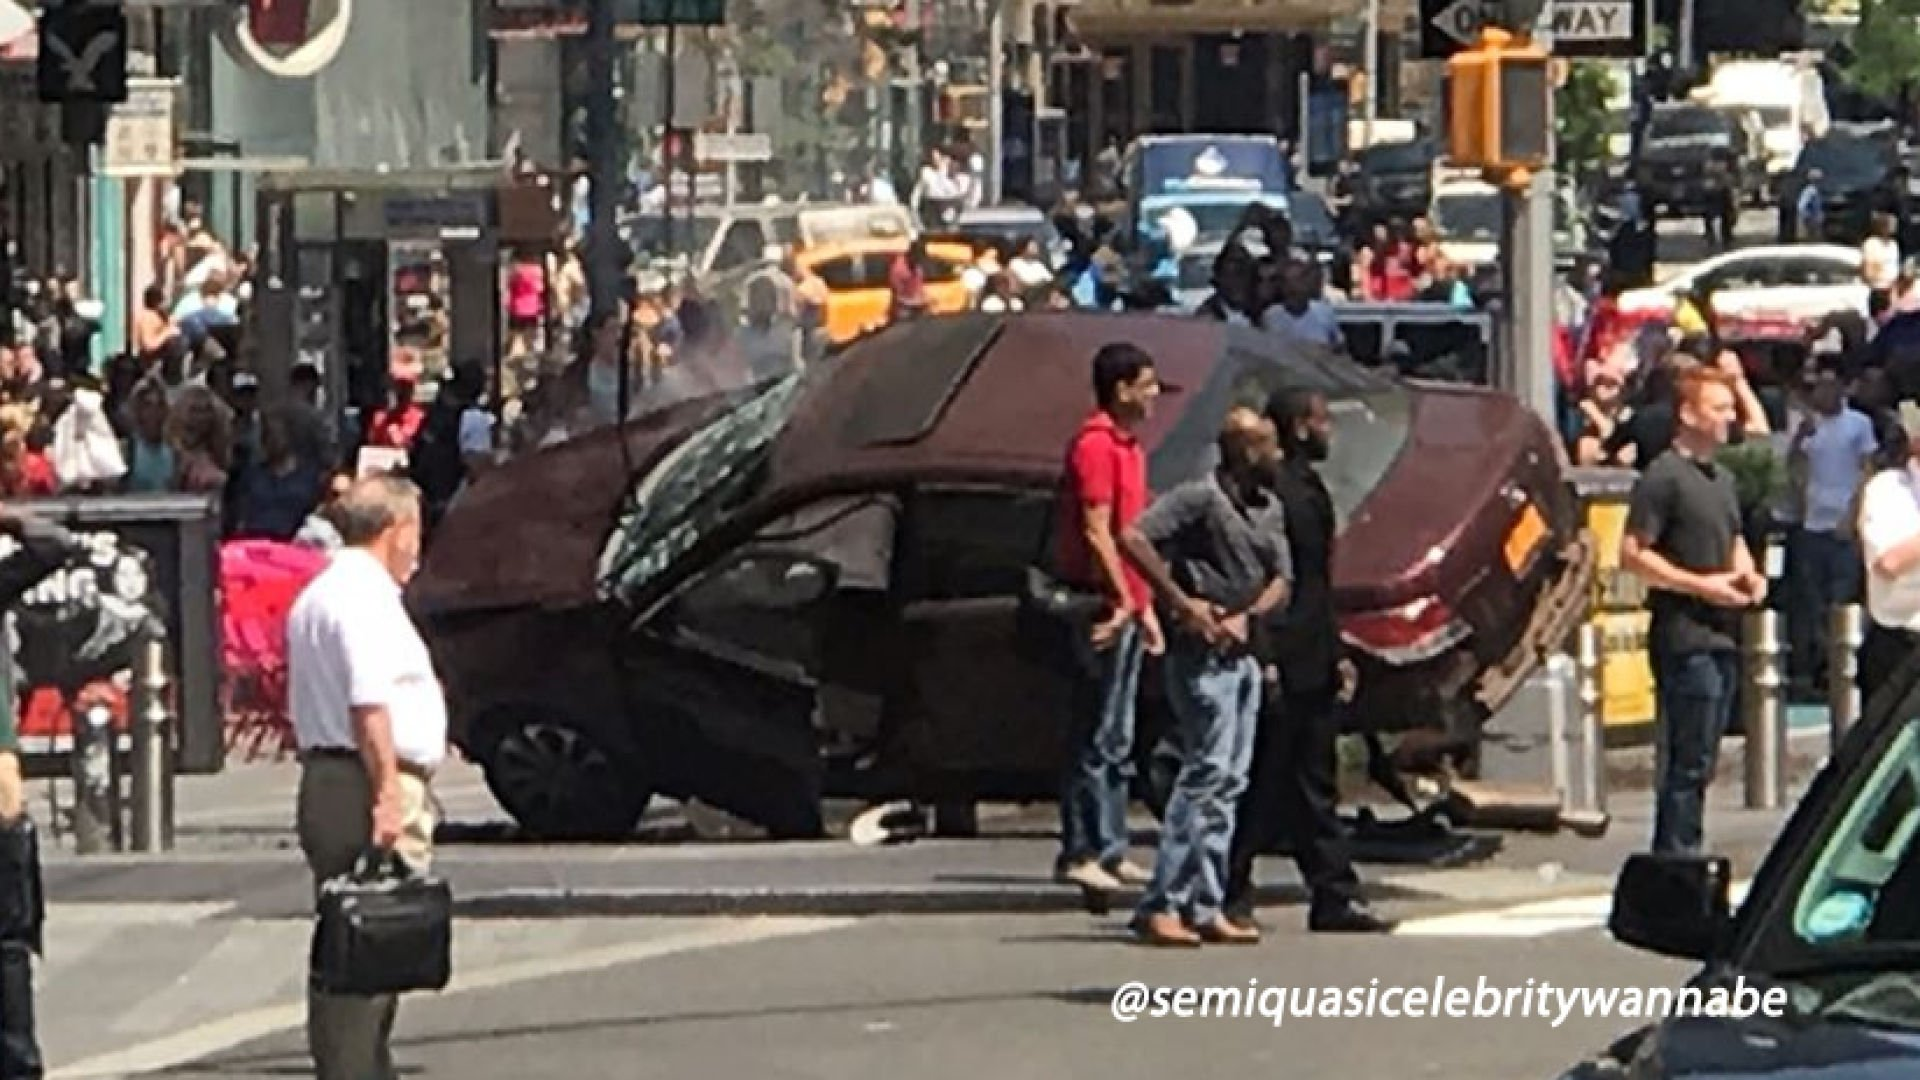 NYPD investigating car crash in Times Square.